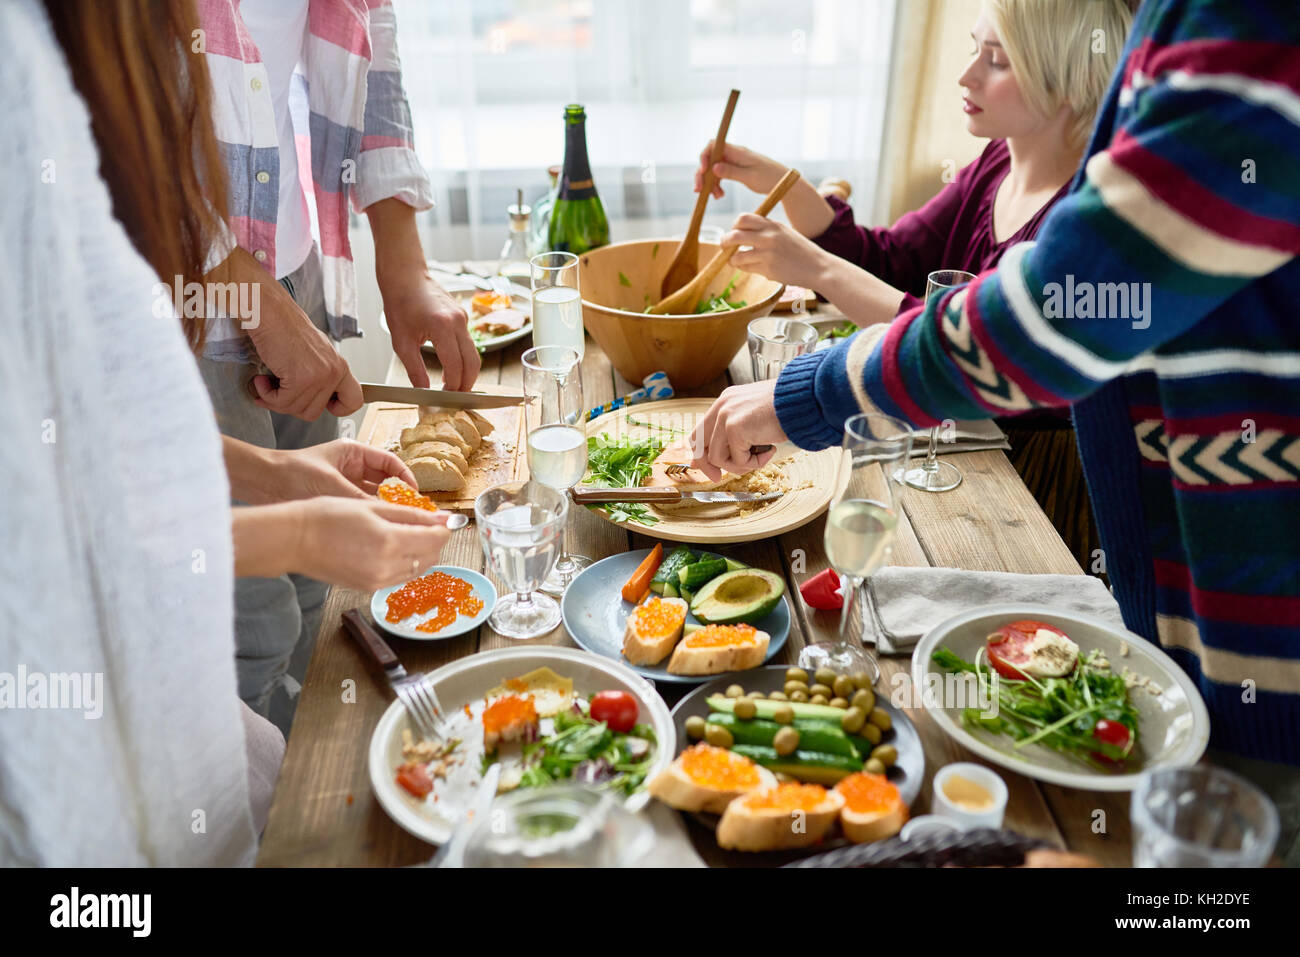 Mid-section group of young people preparing dinner for festive celebration standing at big table and making dishes - Stock Image